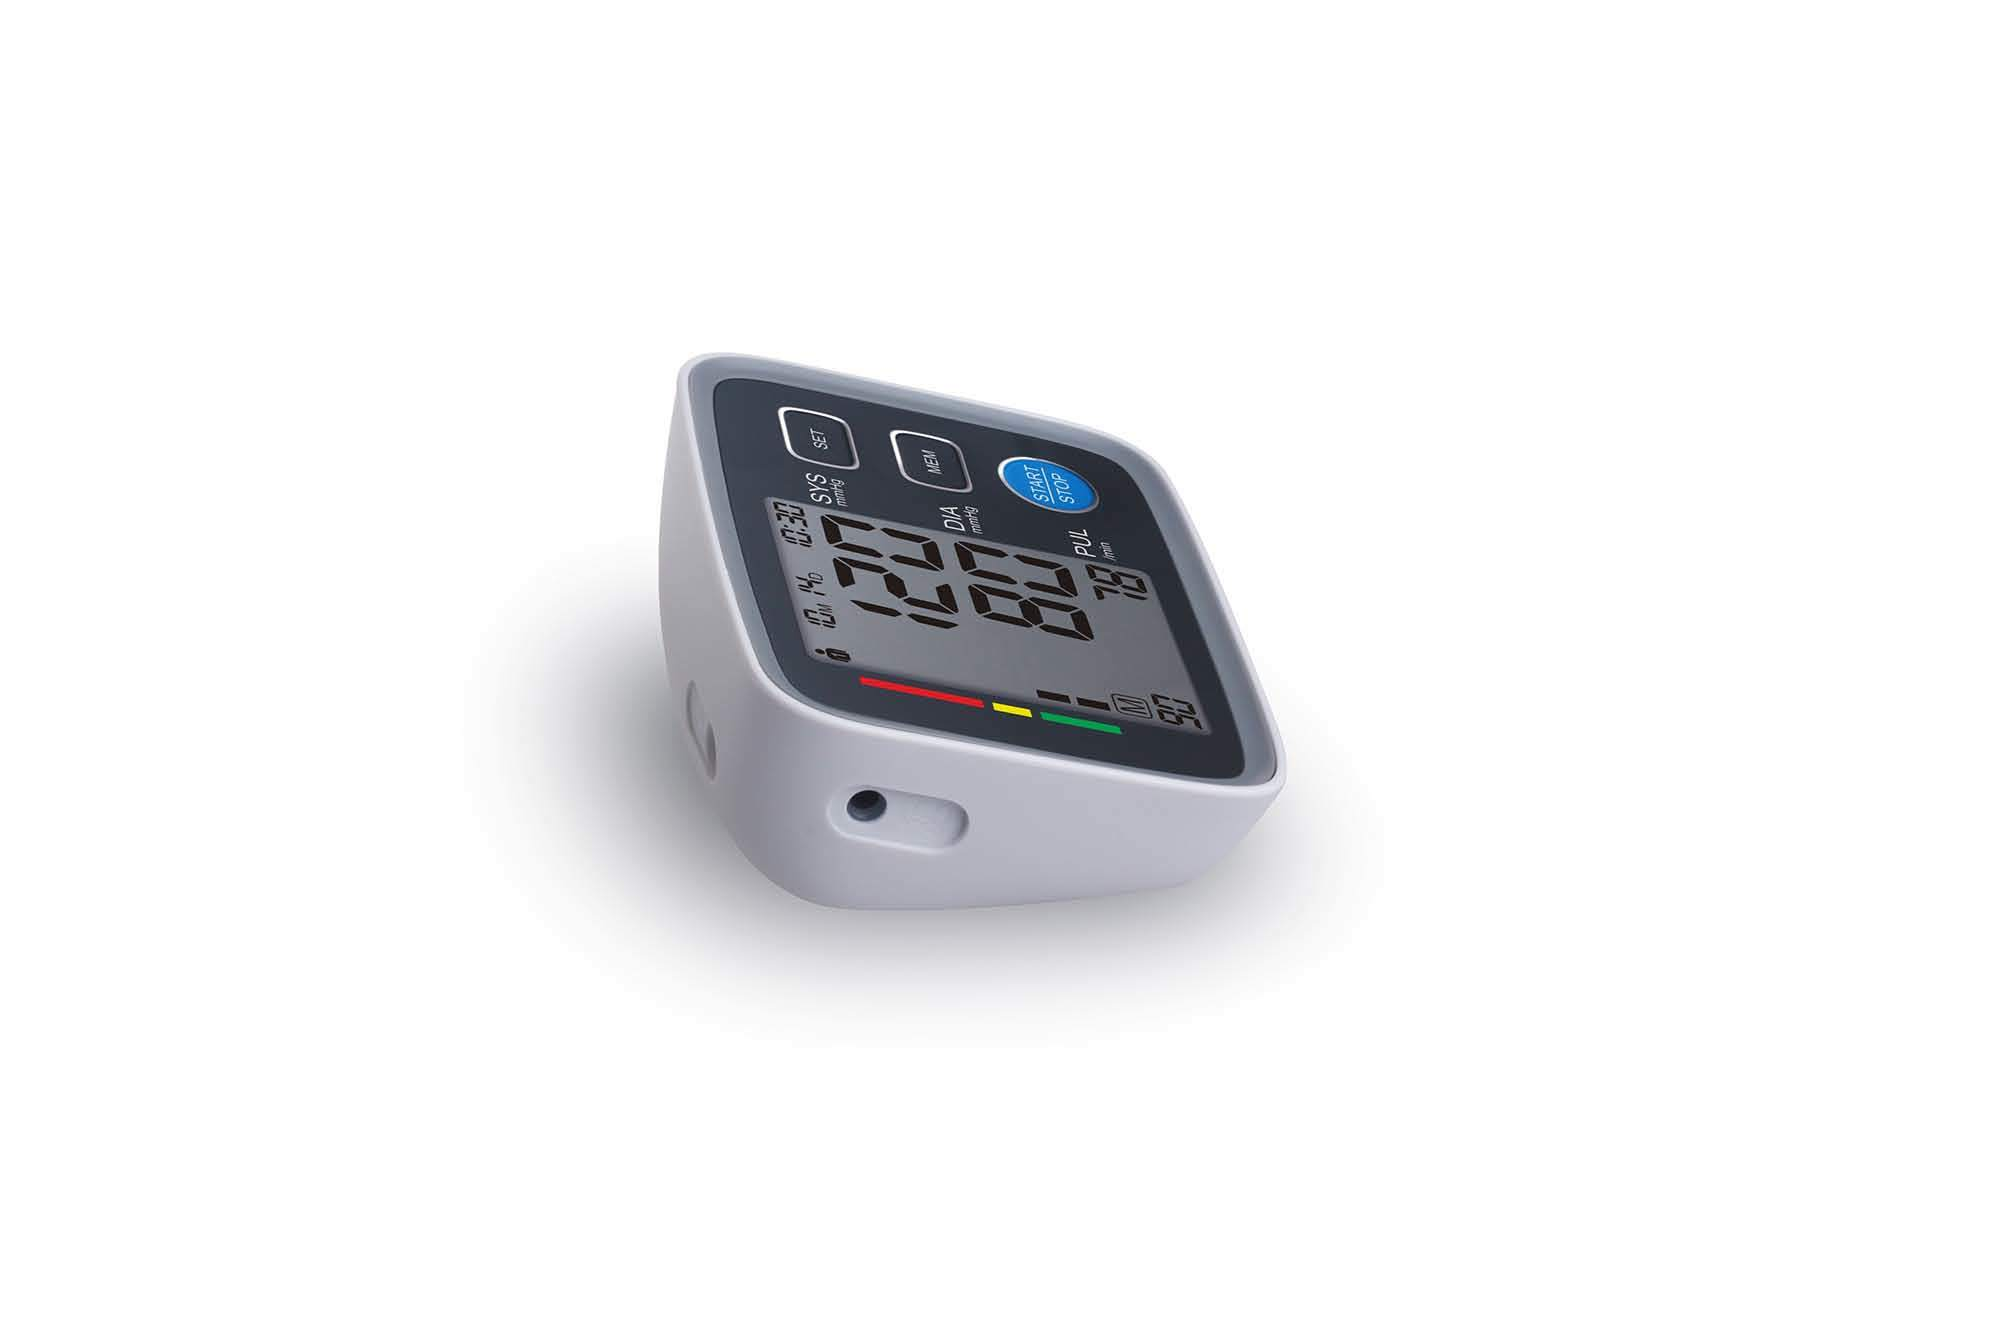 Bluetooth Portable Blood Pressure Monitor Meter Sphygmomanometer